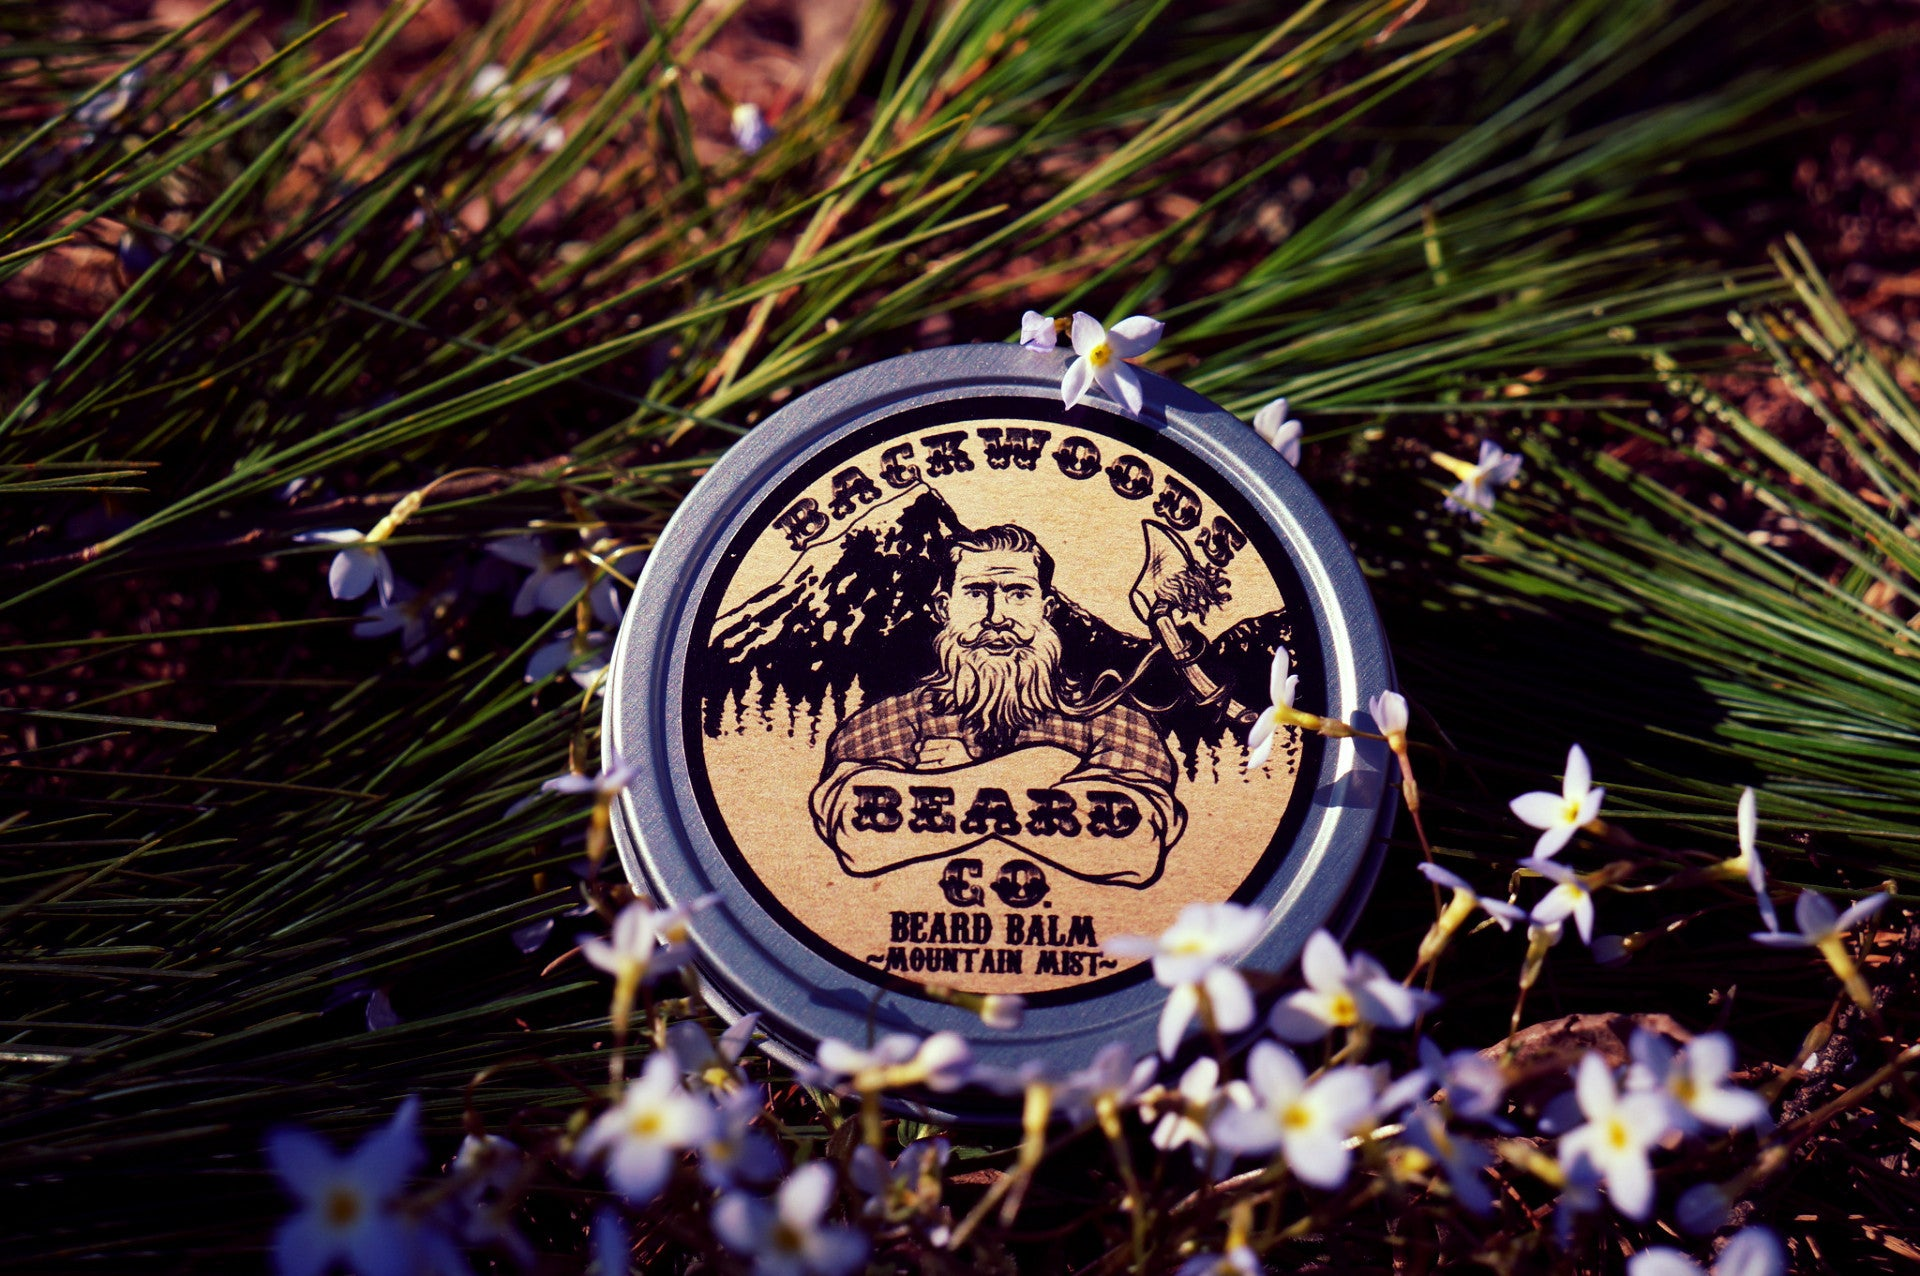 Mountain Mist Beard Balm